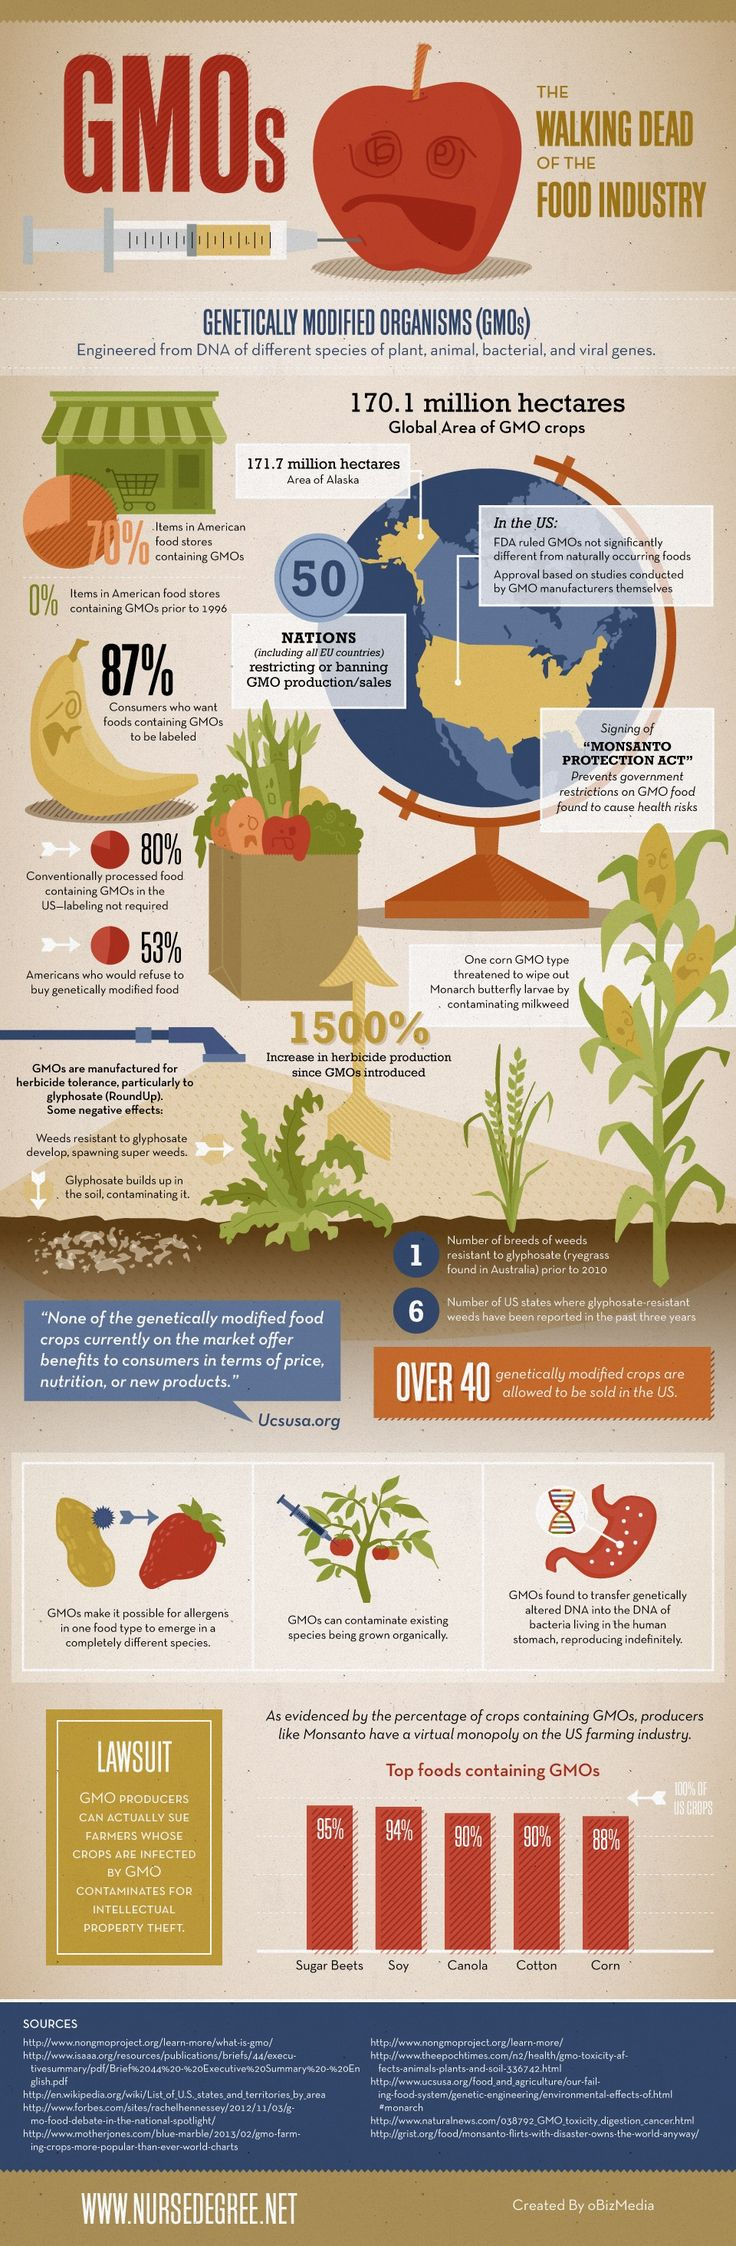 GMOs – The Walking Dead of the Food Industry Found this onBarbara H. Peterson's site Farm Wars.Please share with your network of friends. Source:GMOs: The Walking Dead of the Food Industry